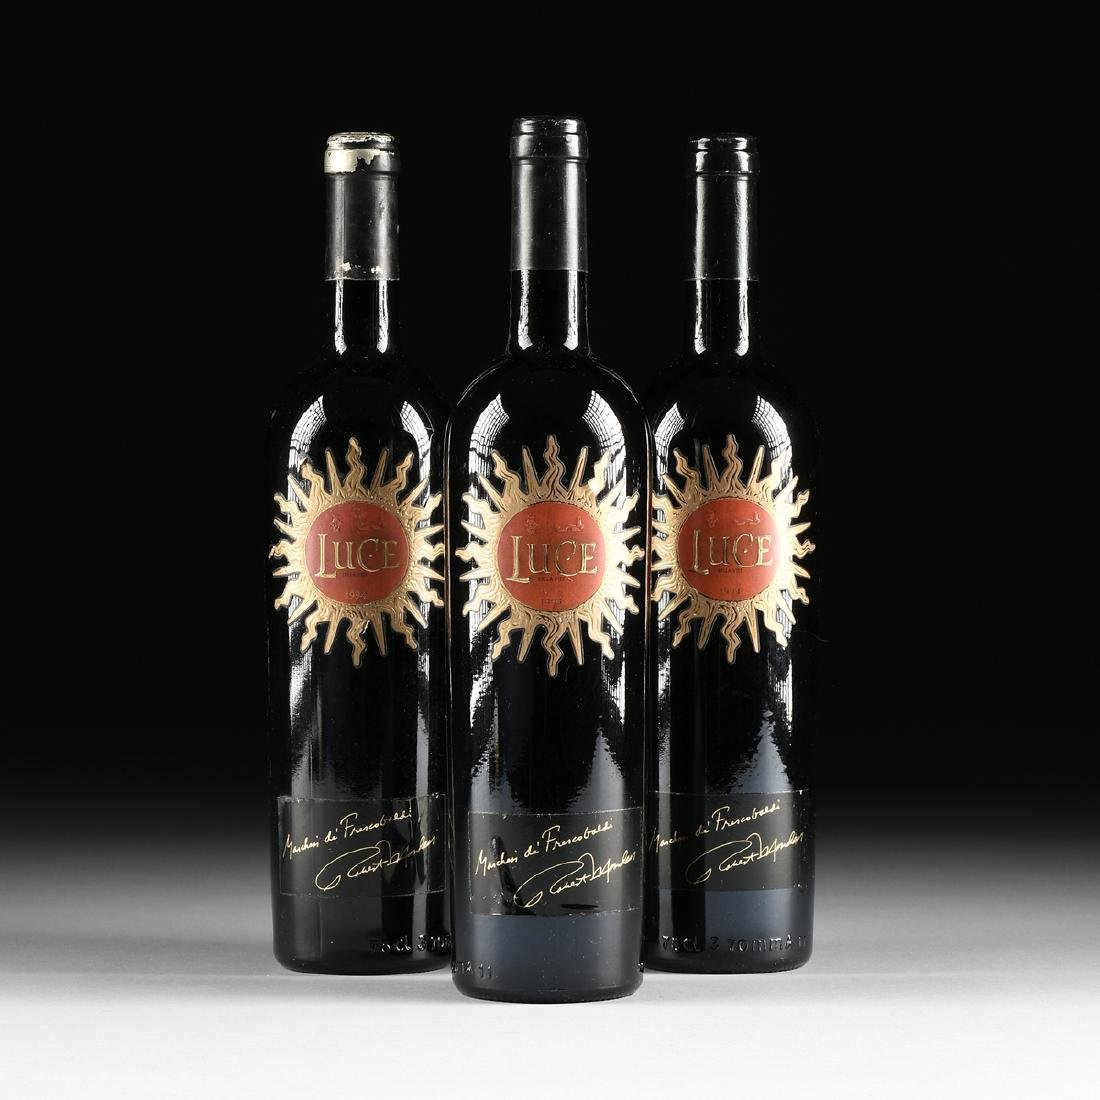 A GROUP OF THREE BOTTLES OF 1994 LUCE DELLA VITE,